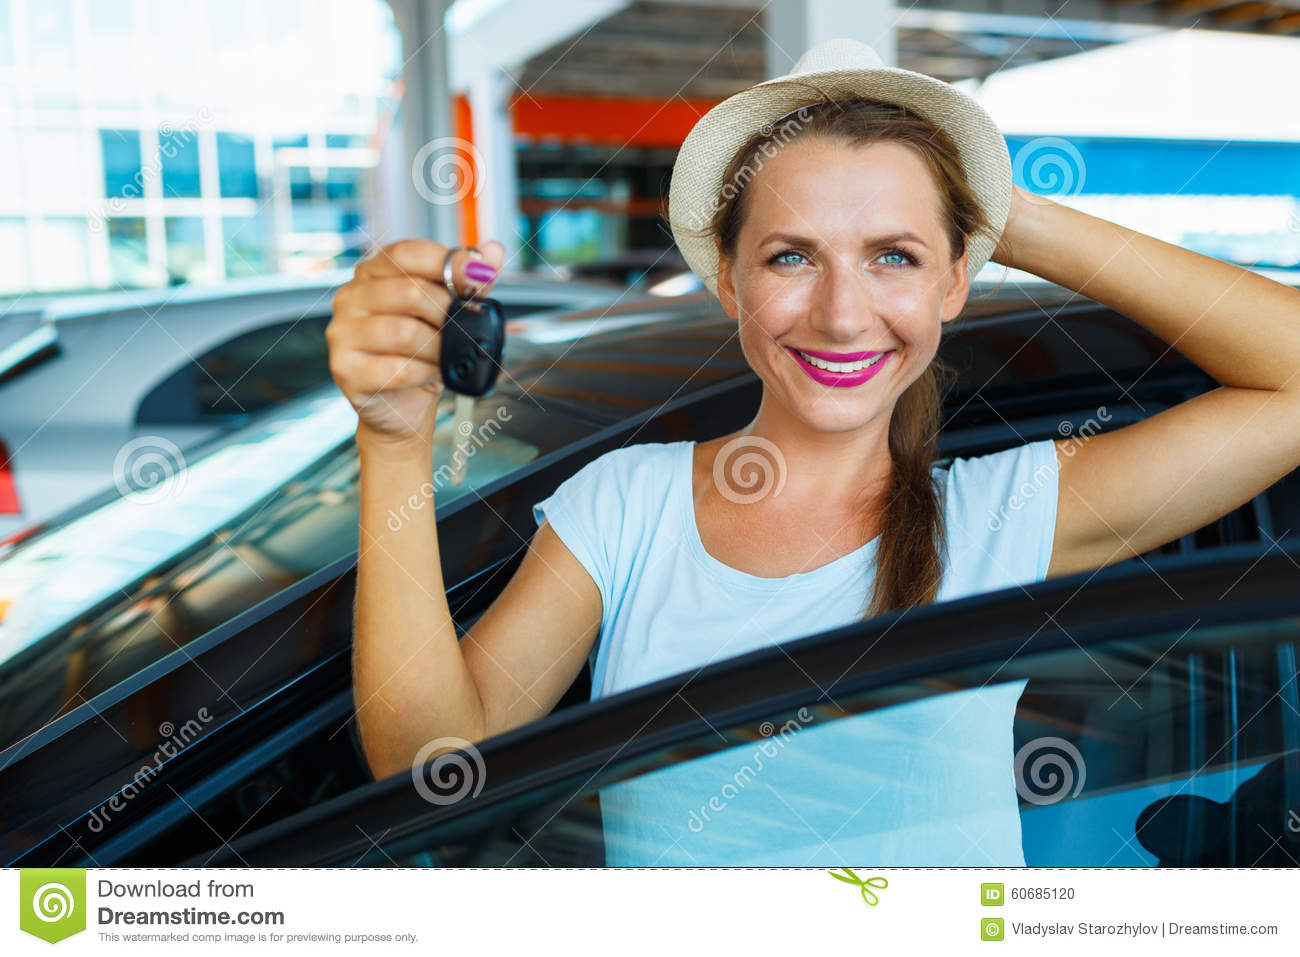 Best Used Car For New Female Driver